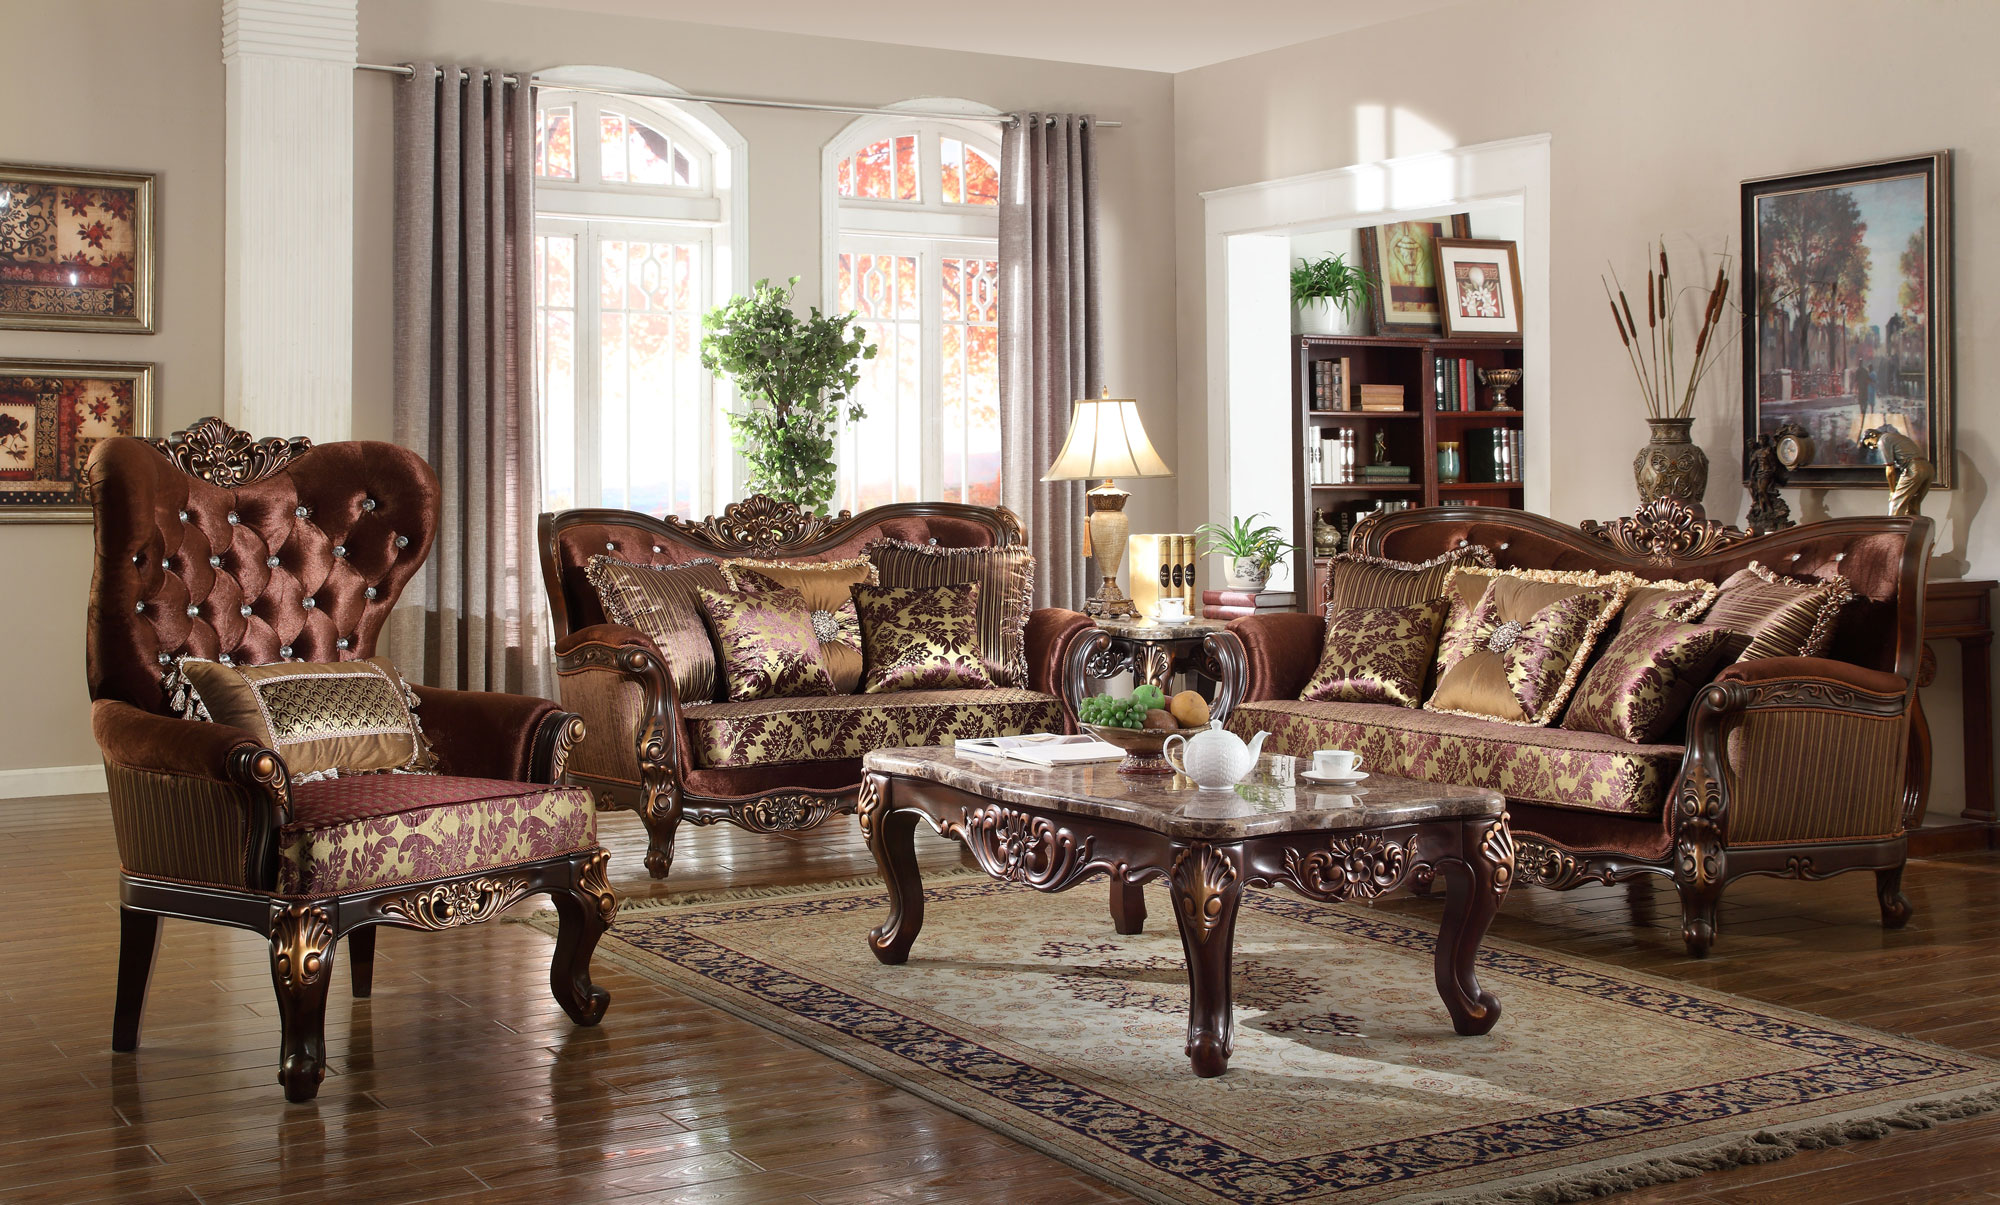 Living Room In French French Provincial Living Room Set 685 In Brown Fabric